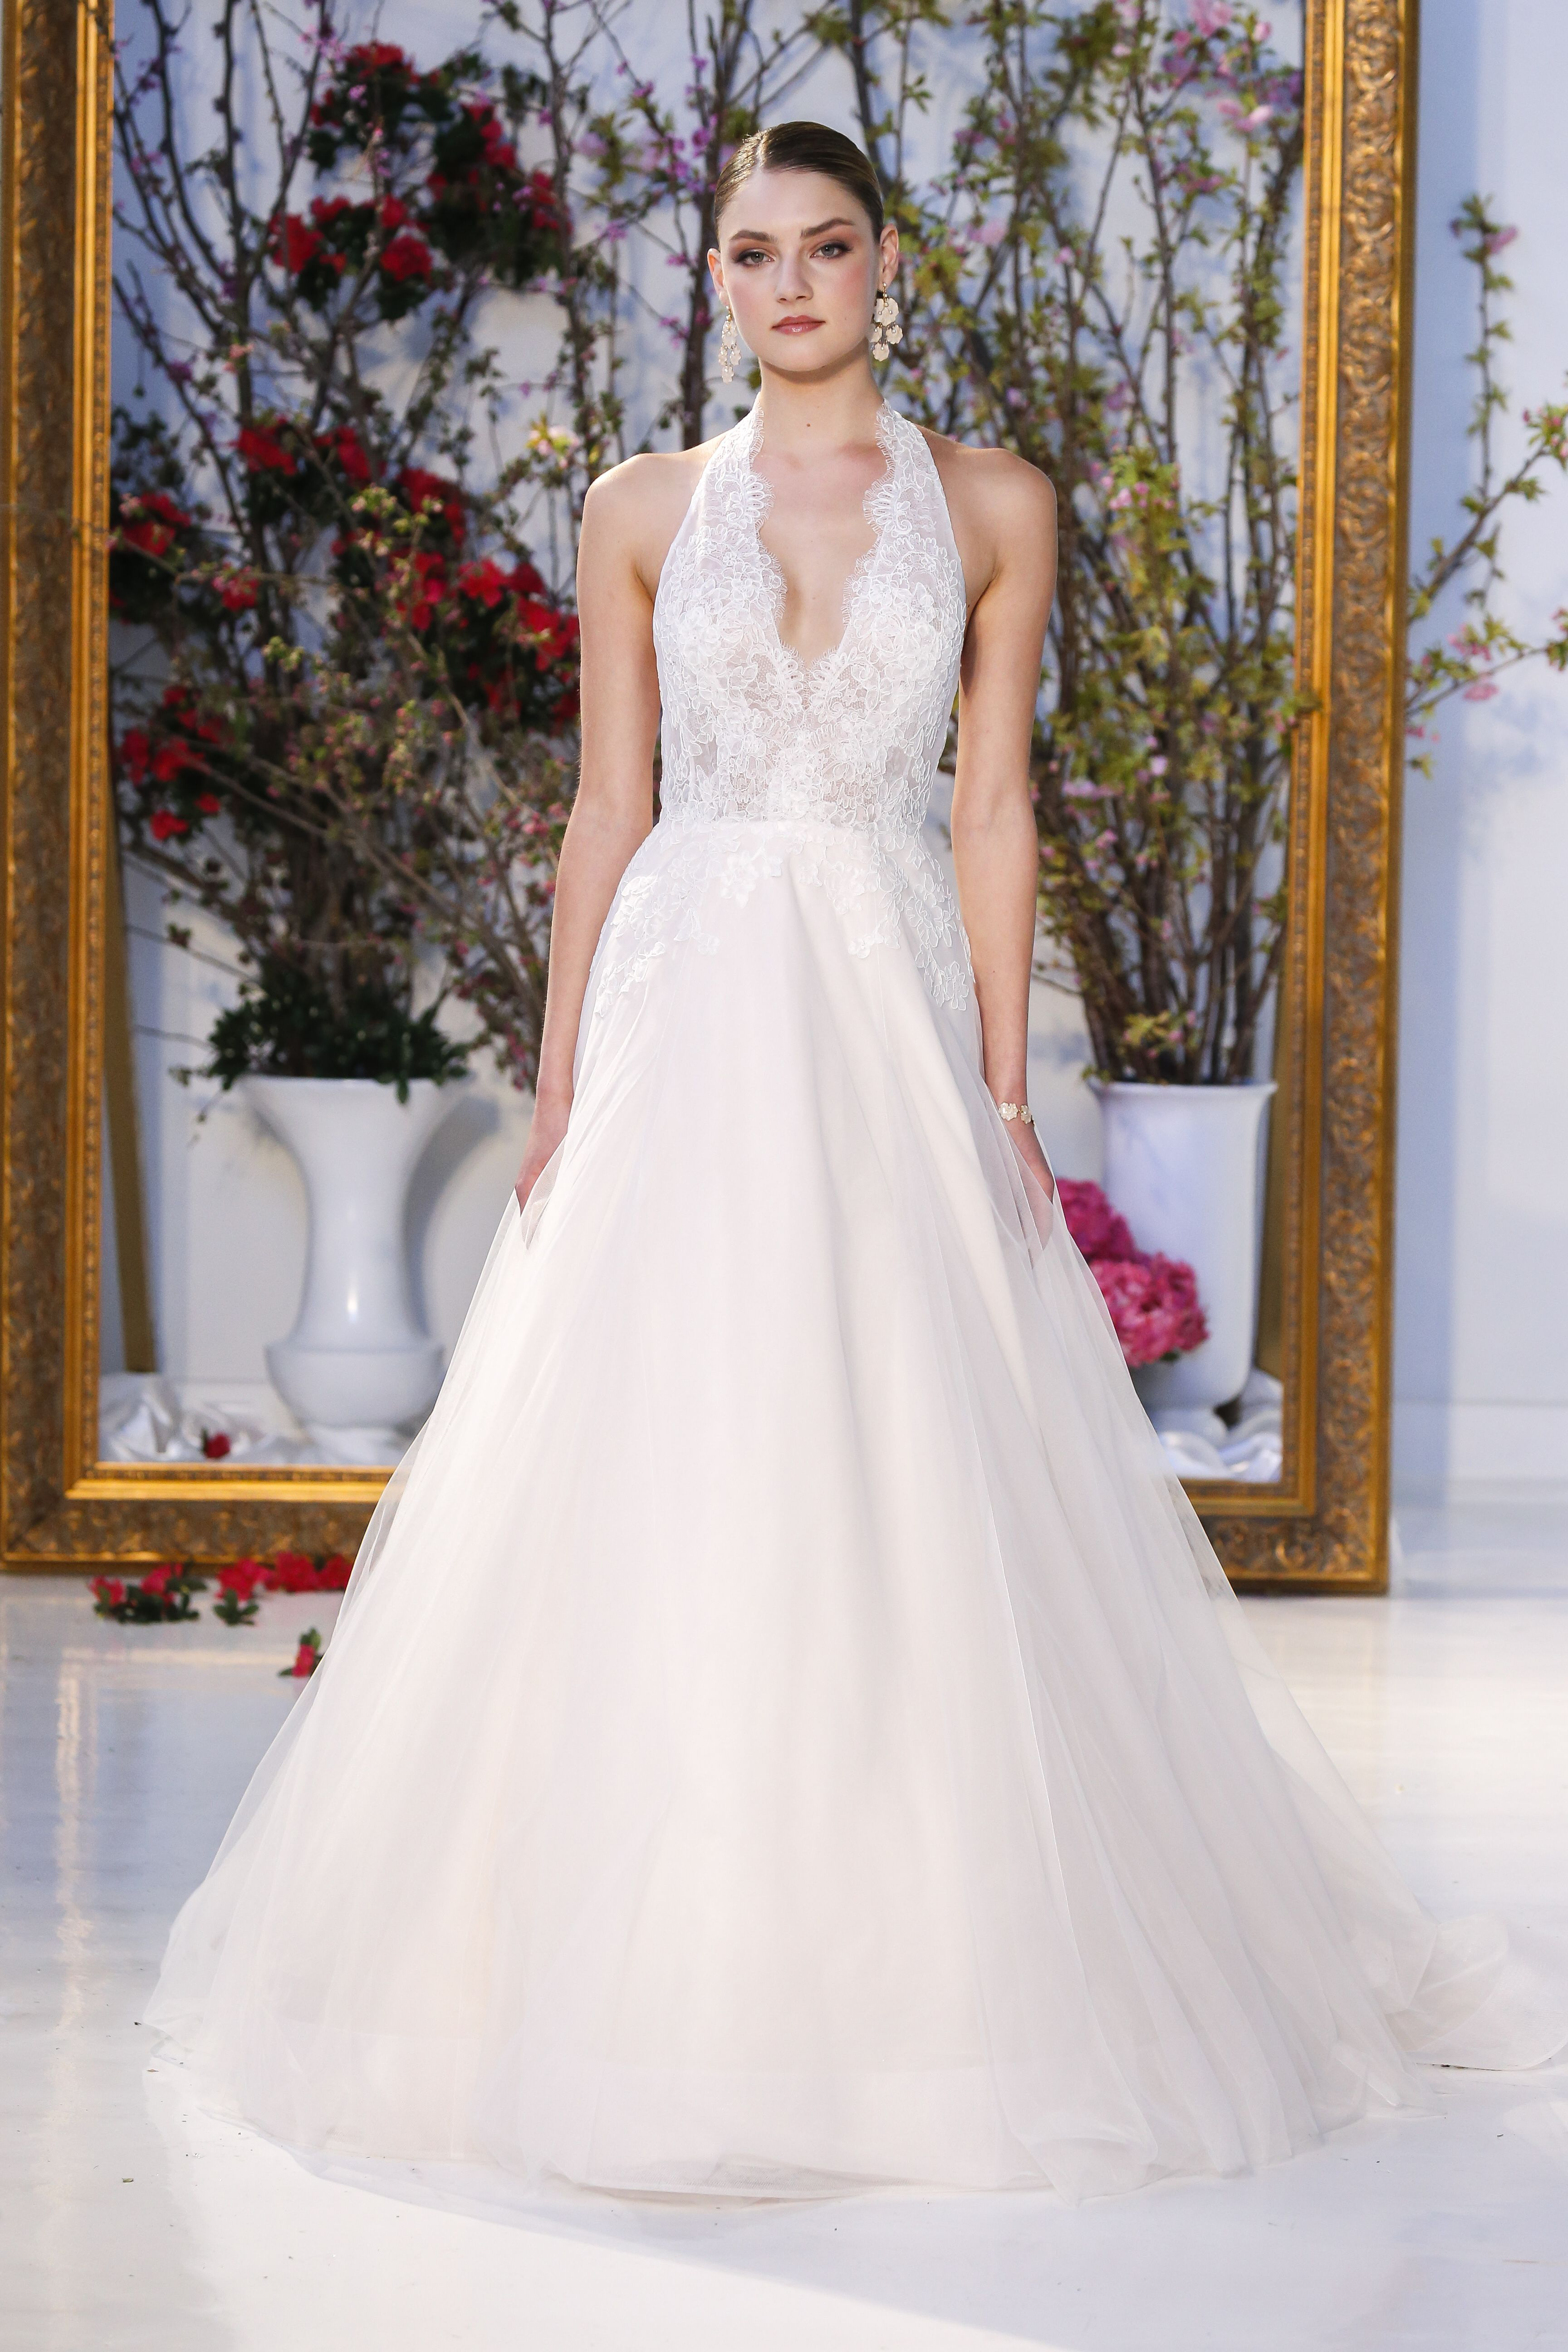 AZALEA - Blue Willow Bride by Anne Barge, Spring 2017 Collection ...